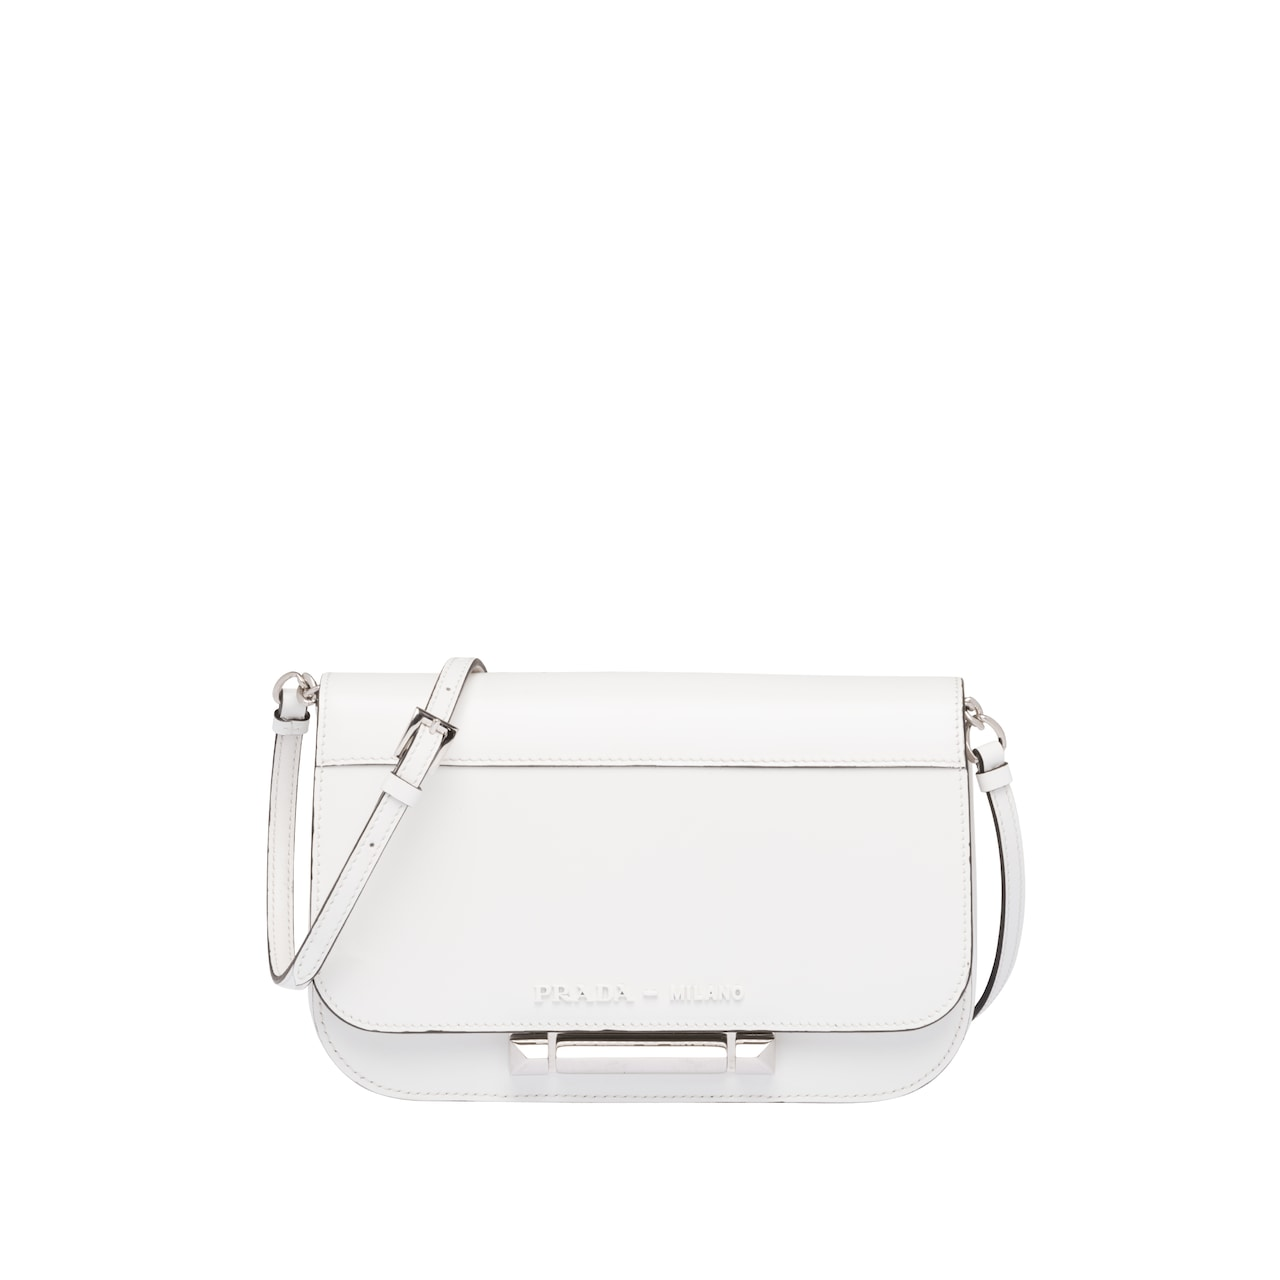 Prada Sybille leather bag